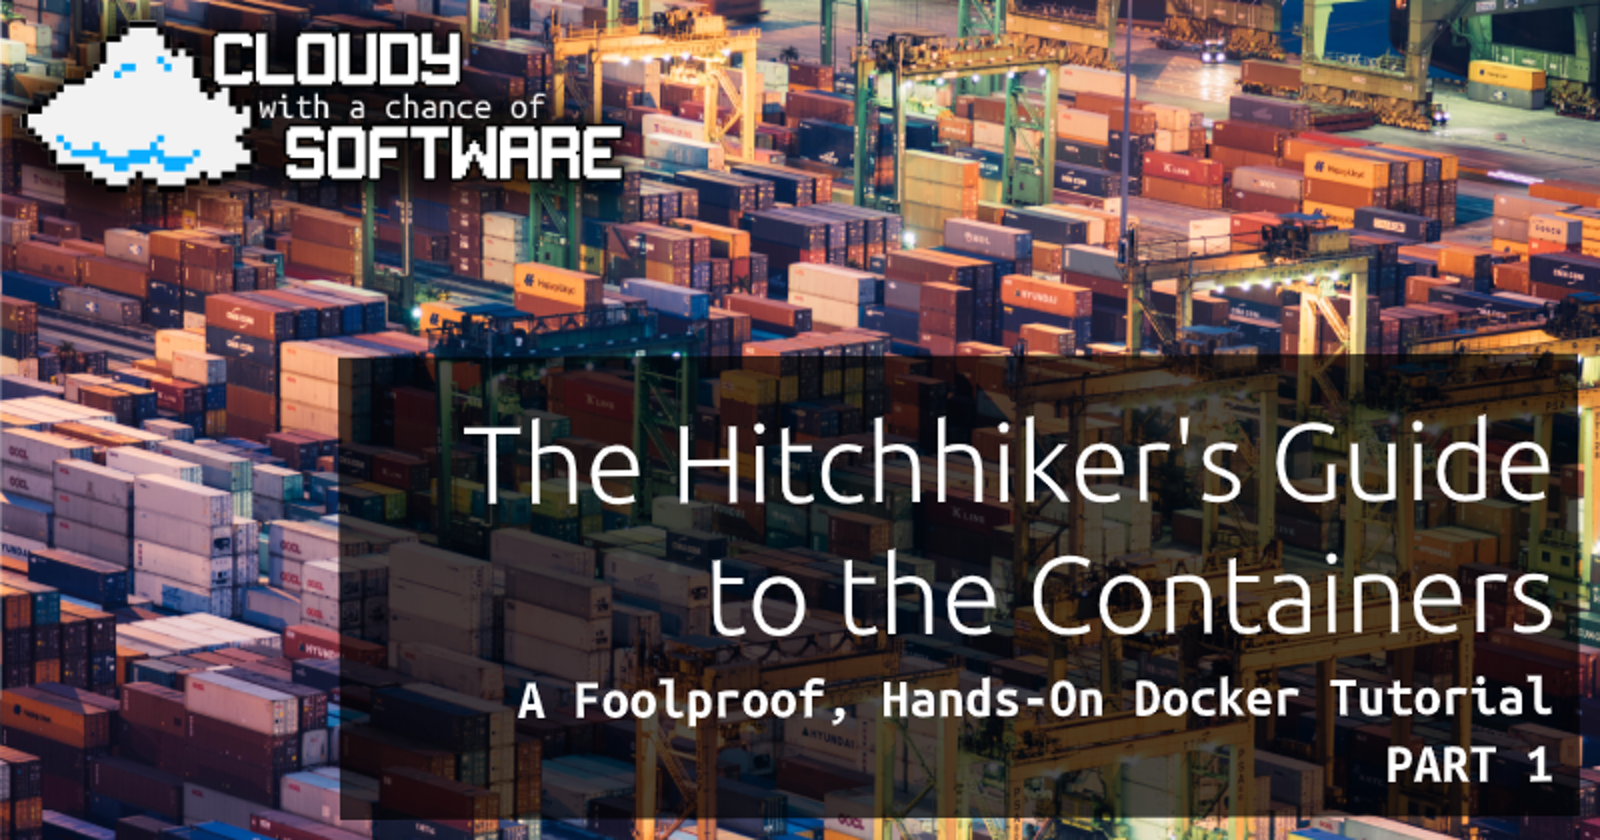 The Hitchhiker's Guide to the Containers: A Foolproof, Hands-on Docker Tutorial